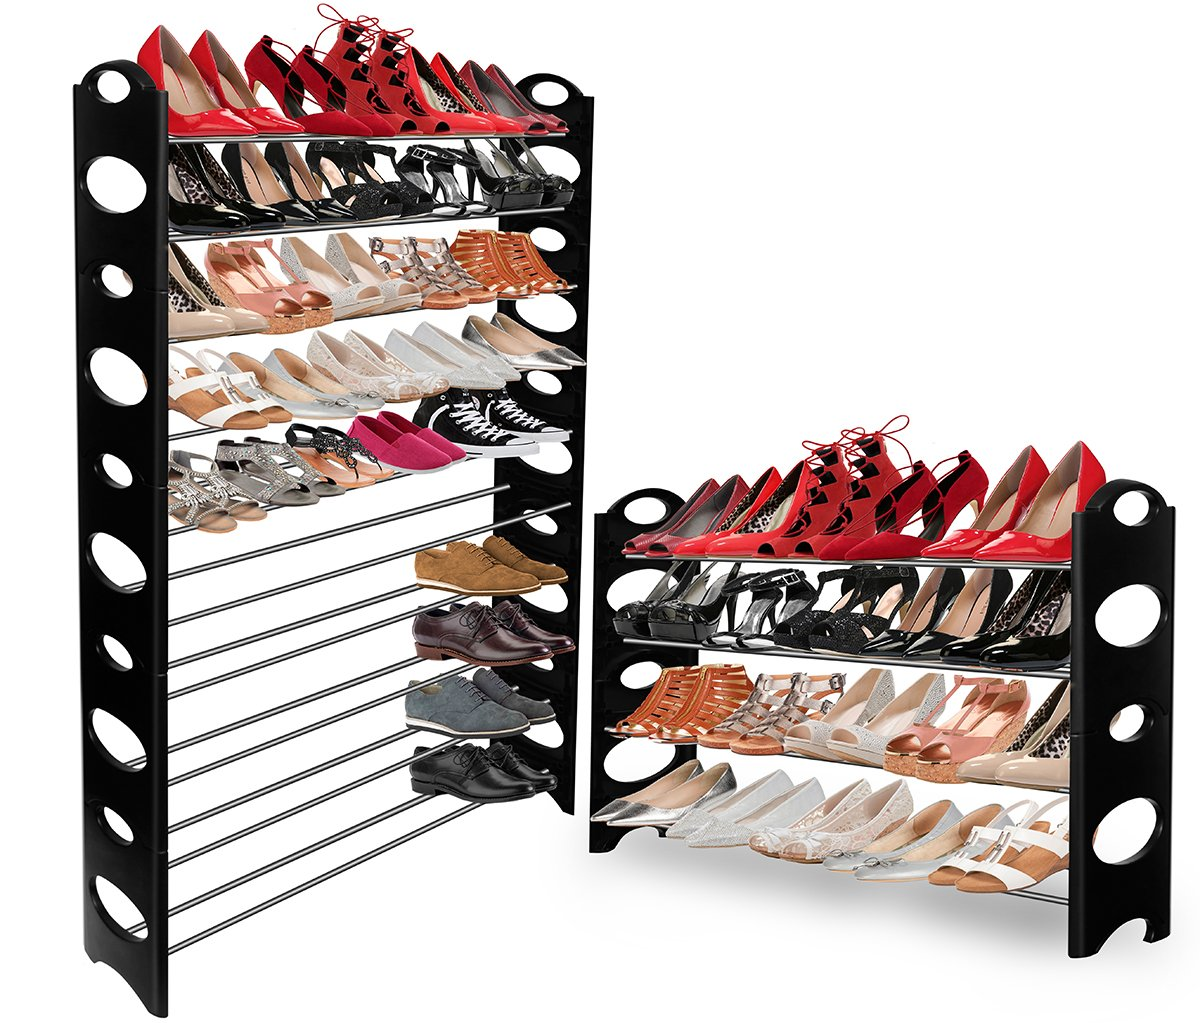 Good Amazon.com: OxGord 50 Pair Shoe Rack Storage Organizer, 10 Tier Portable  Wardrobe Closet Bench Tower Stackable, Adjustable Shelf   Strong U0026 Sturdy  Space ...